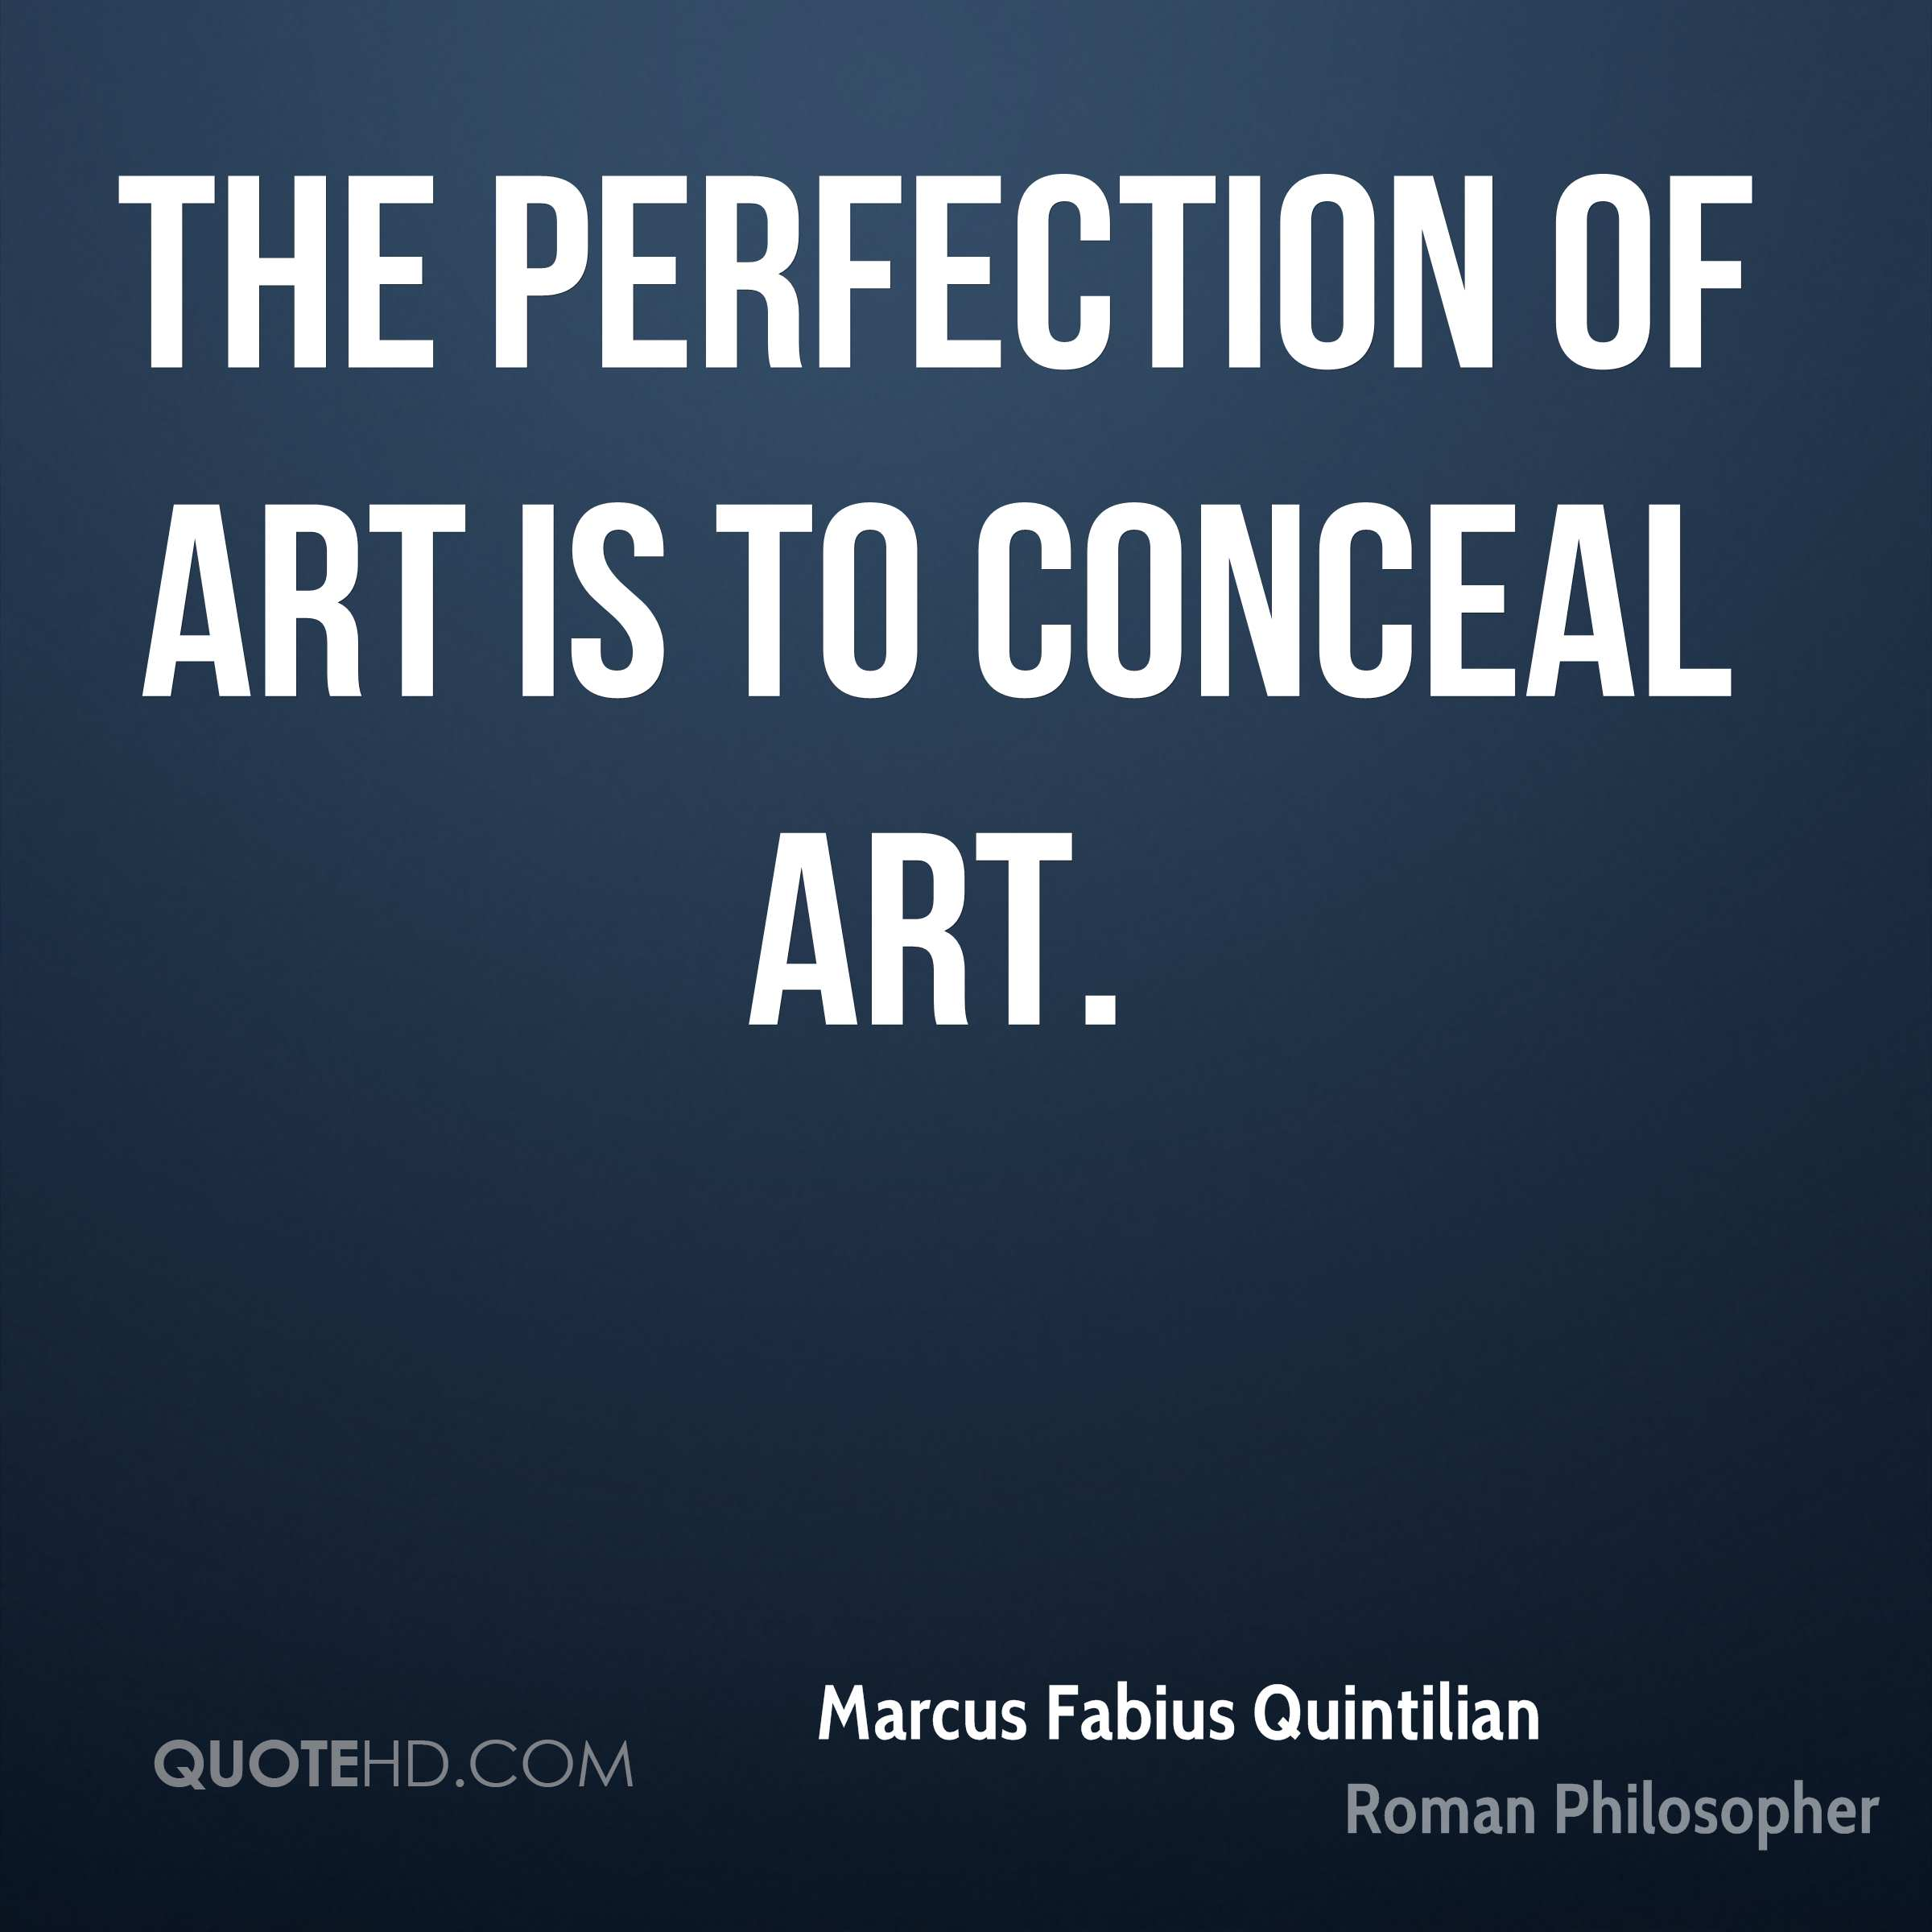 The perfection of art is to conceal art.